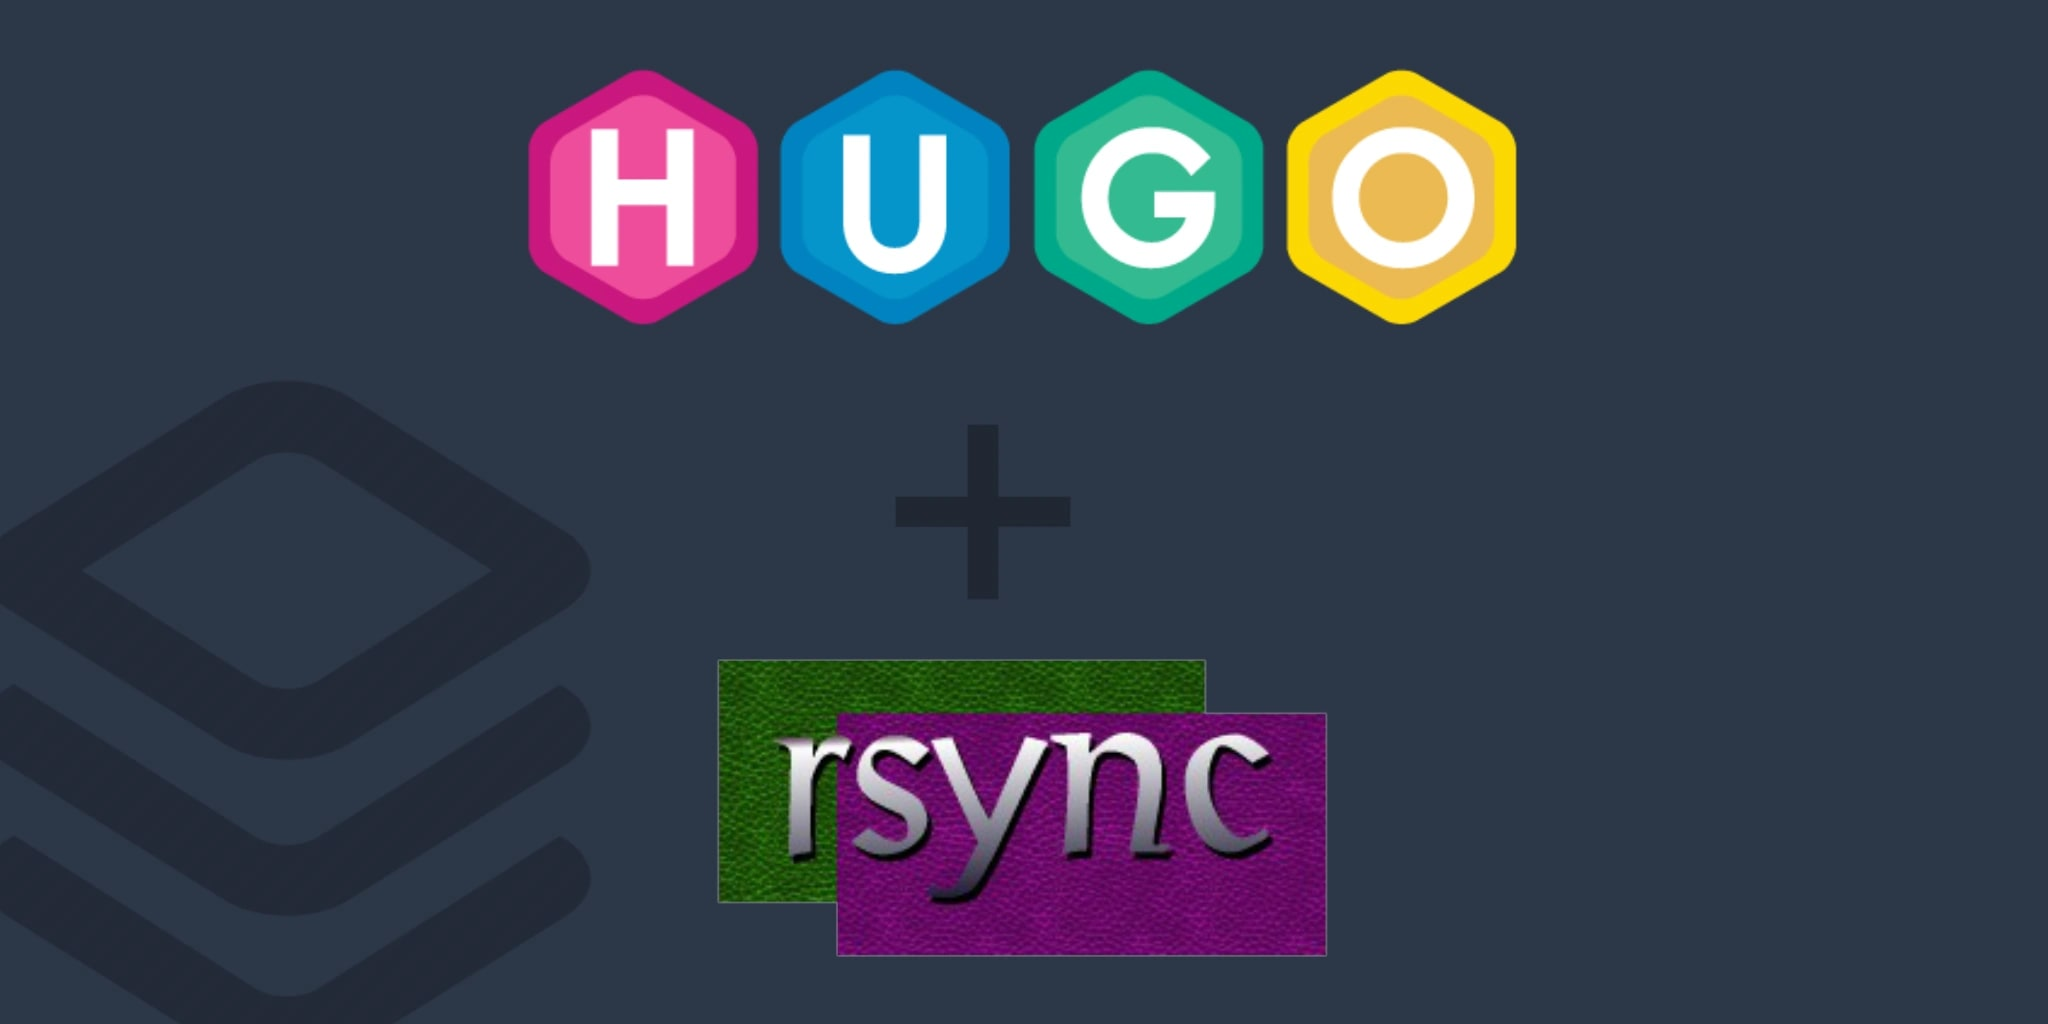 Hugo Deploy with Rsync (Optimized Settings)